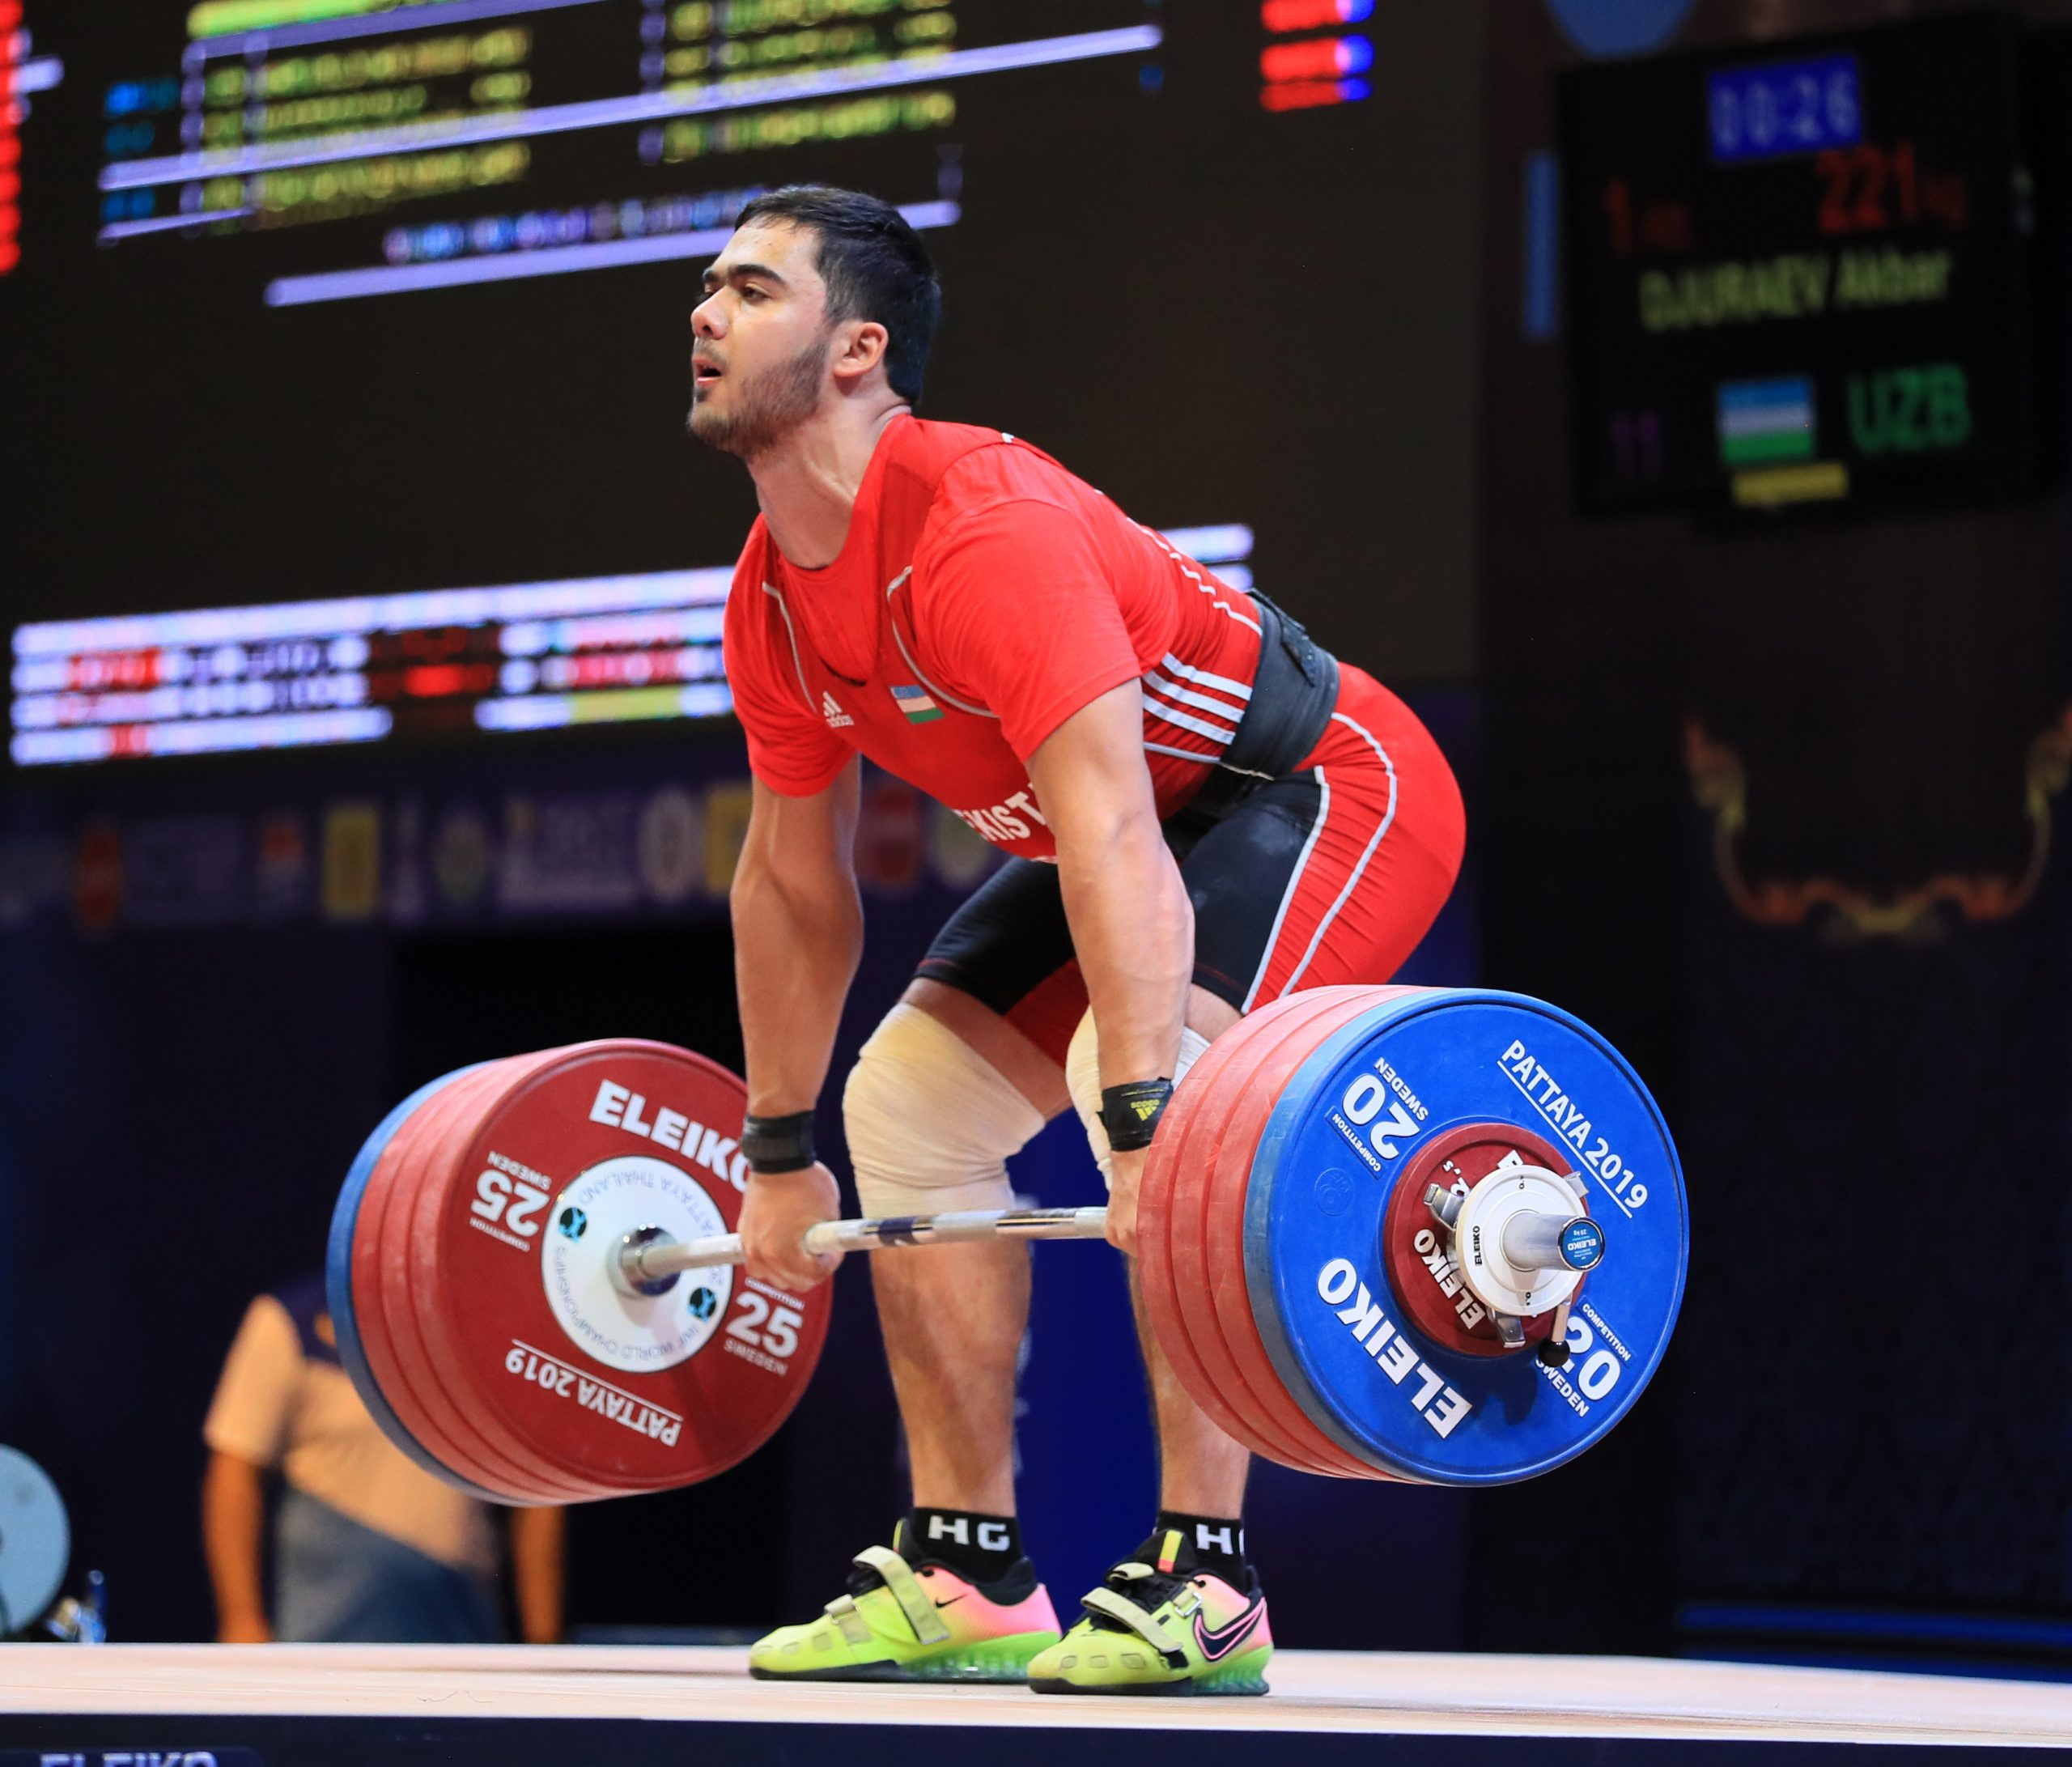 Weightlifting news and views